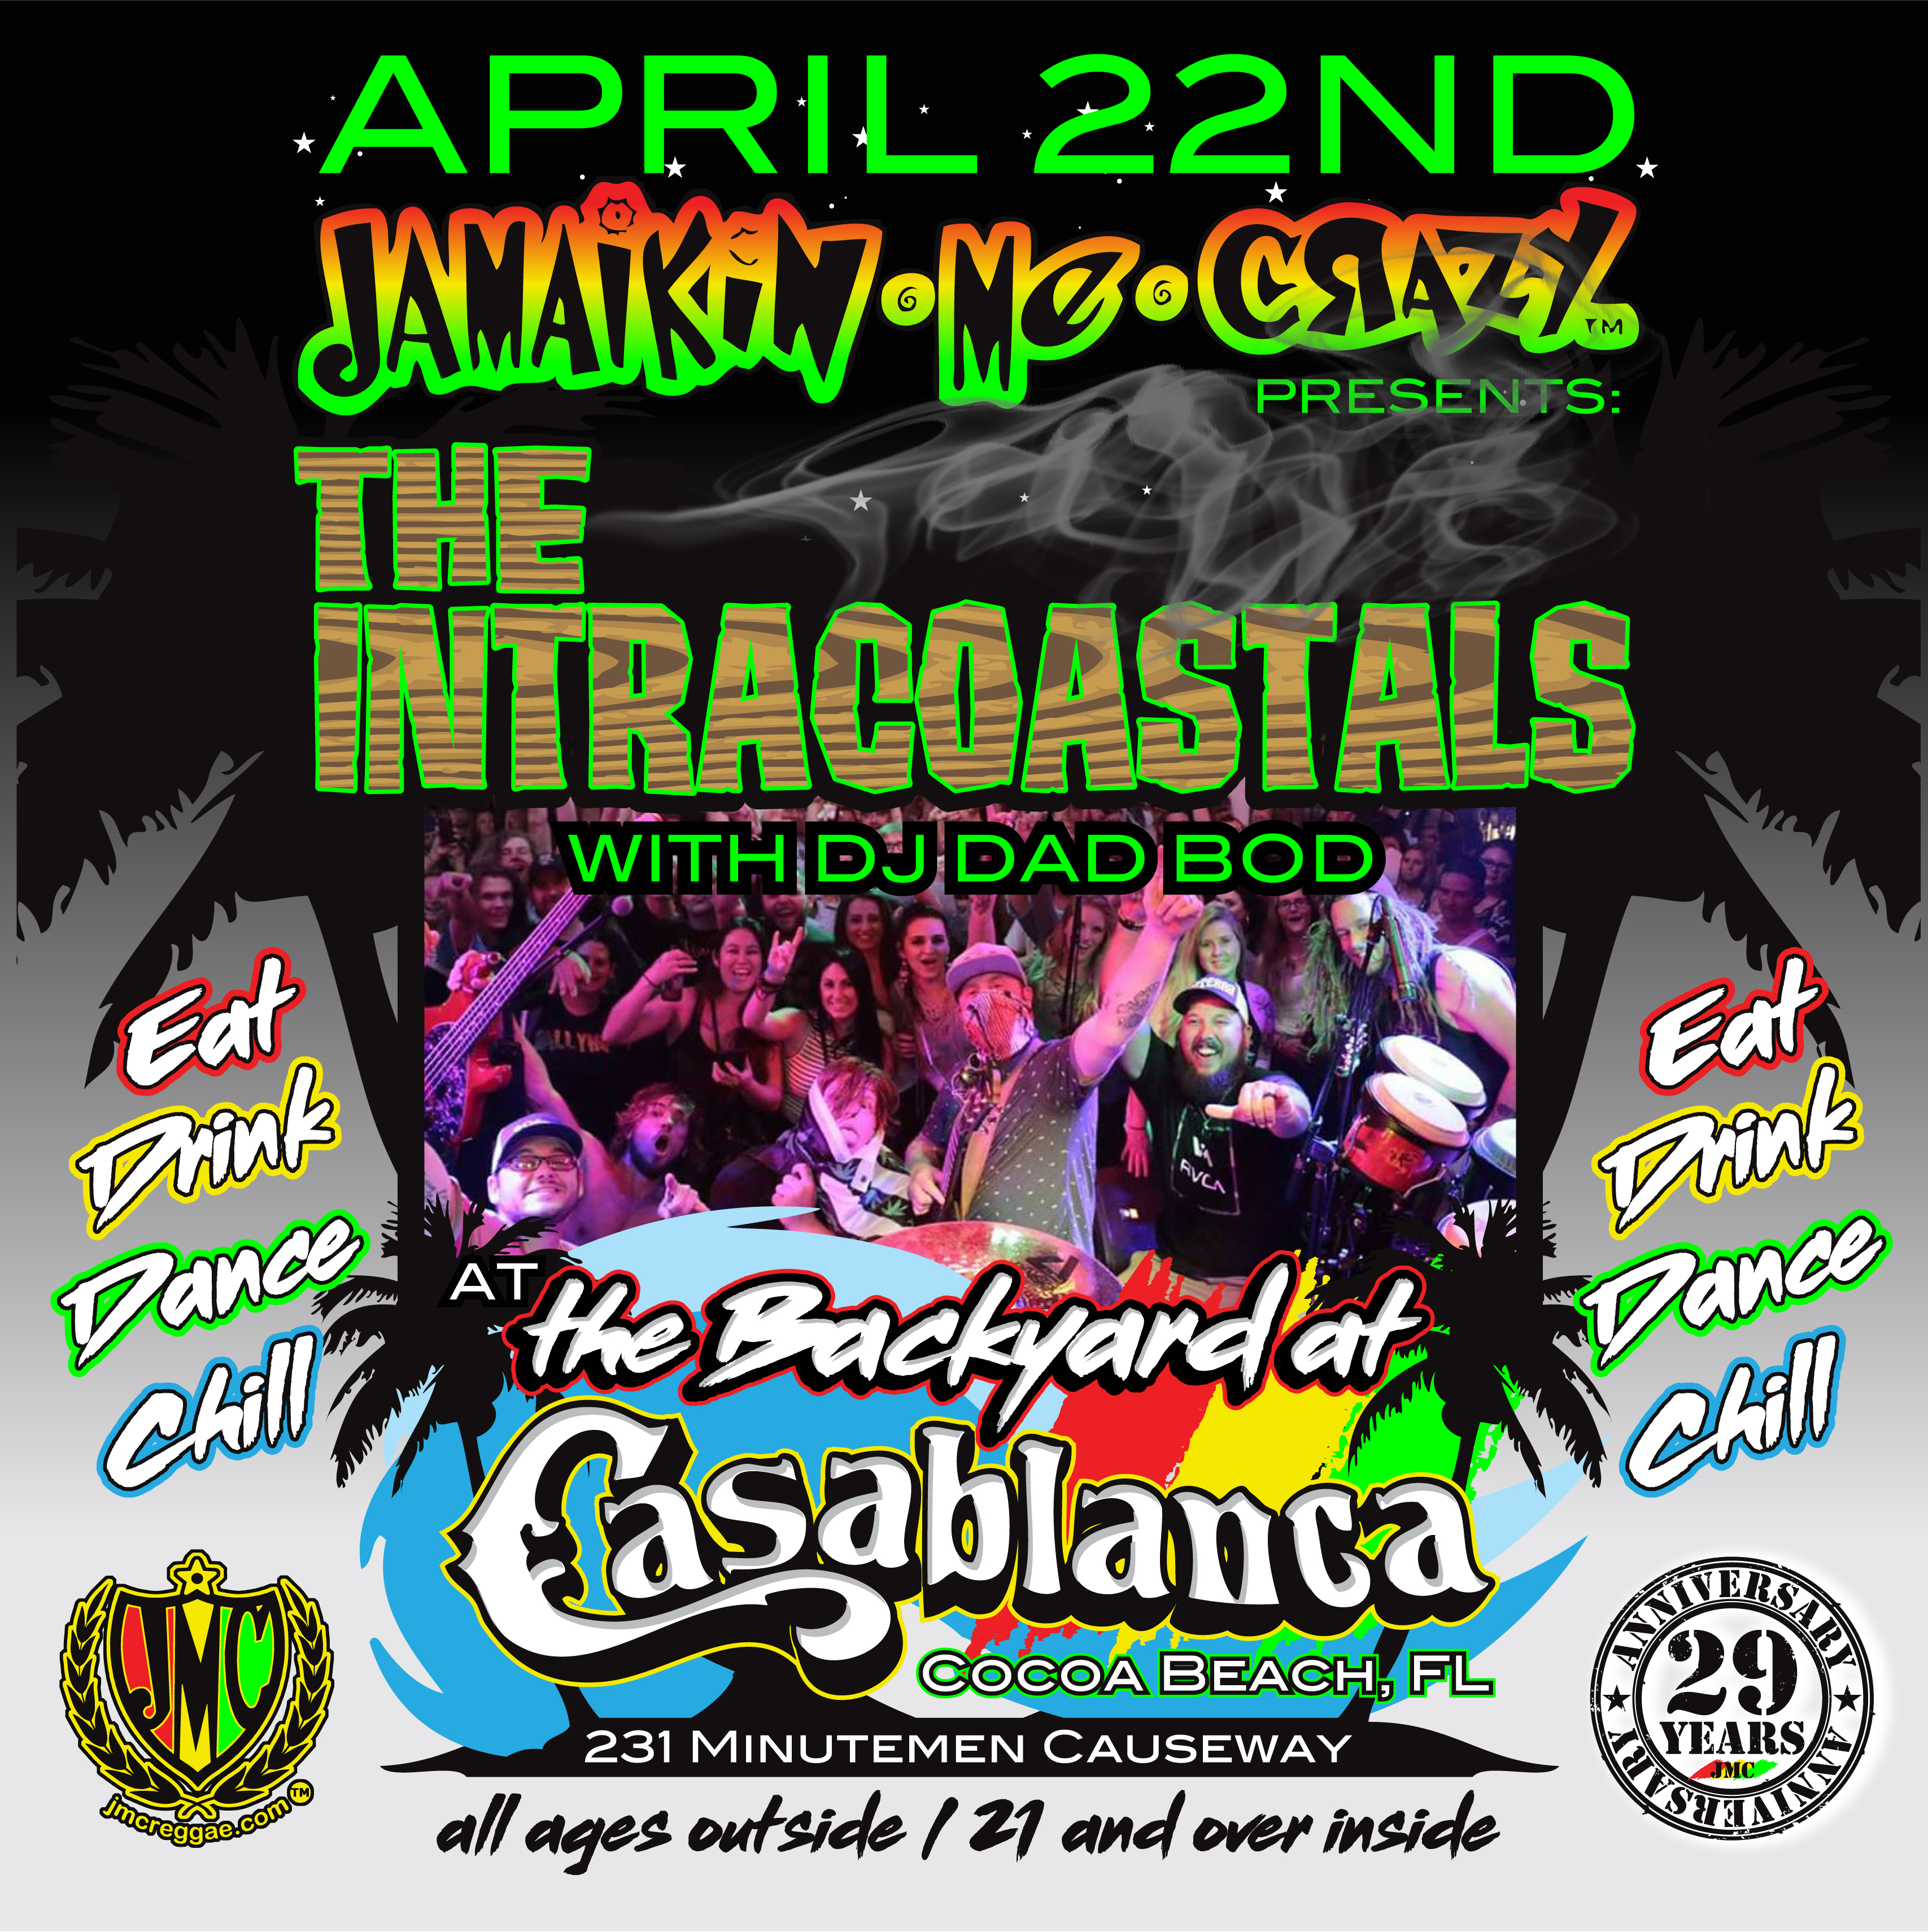 JMC presents: The Intracoastals at Casablanca April 22